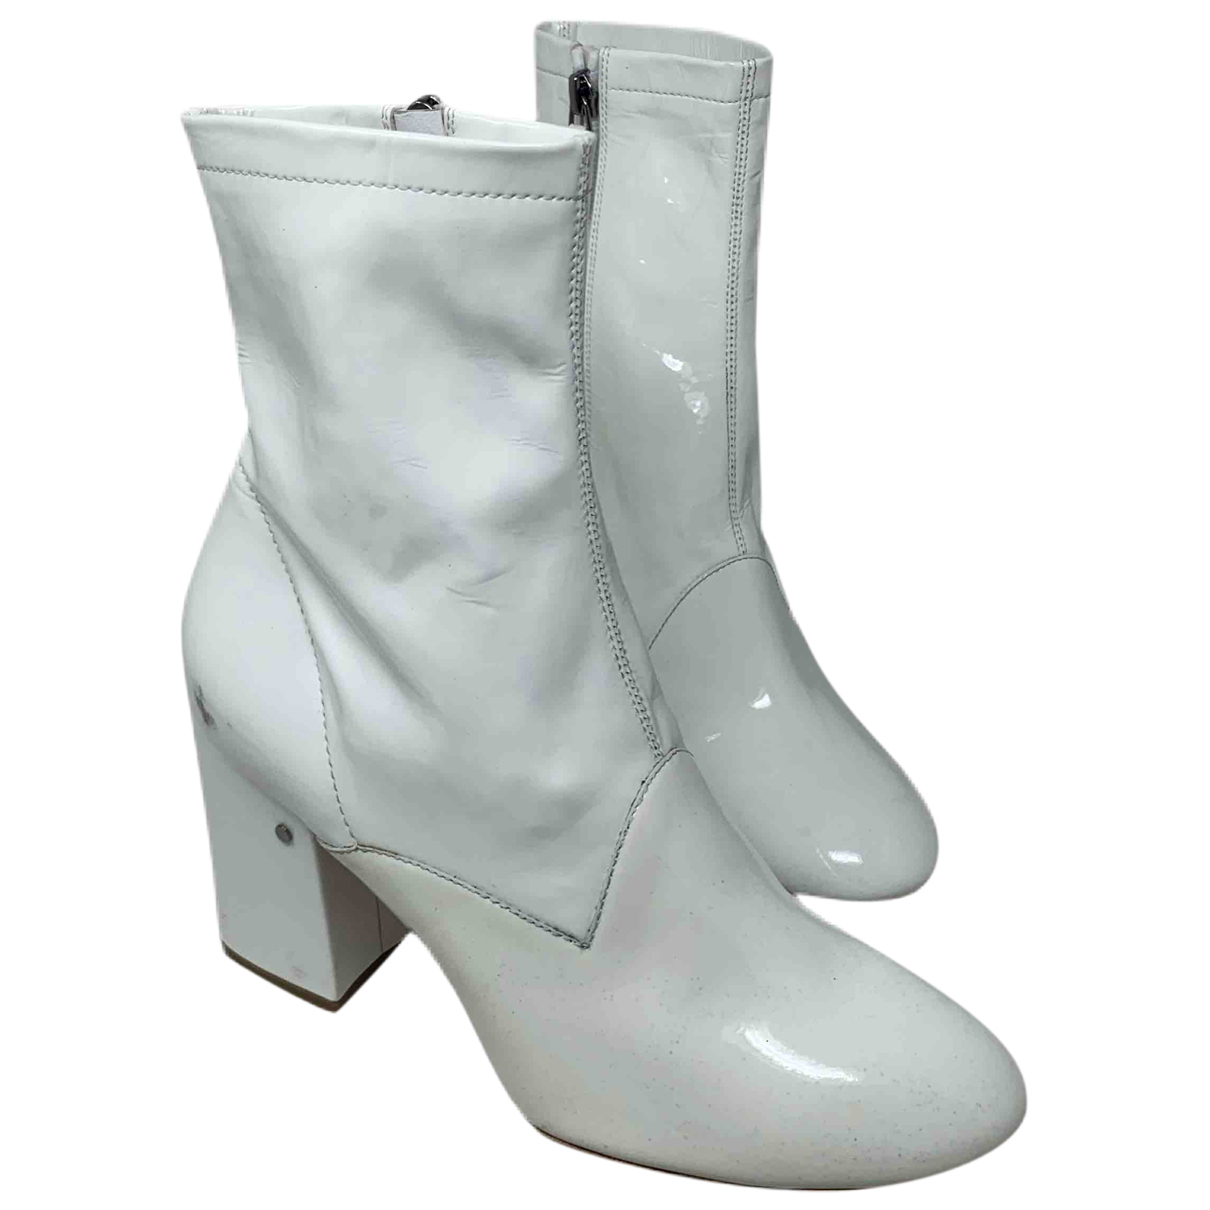 Laurence Dacade N White Patent leather Ankle boots for Women 39 EU